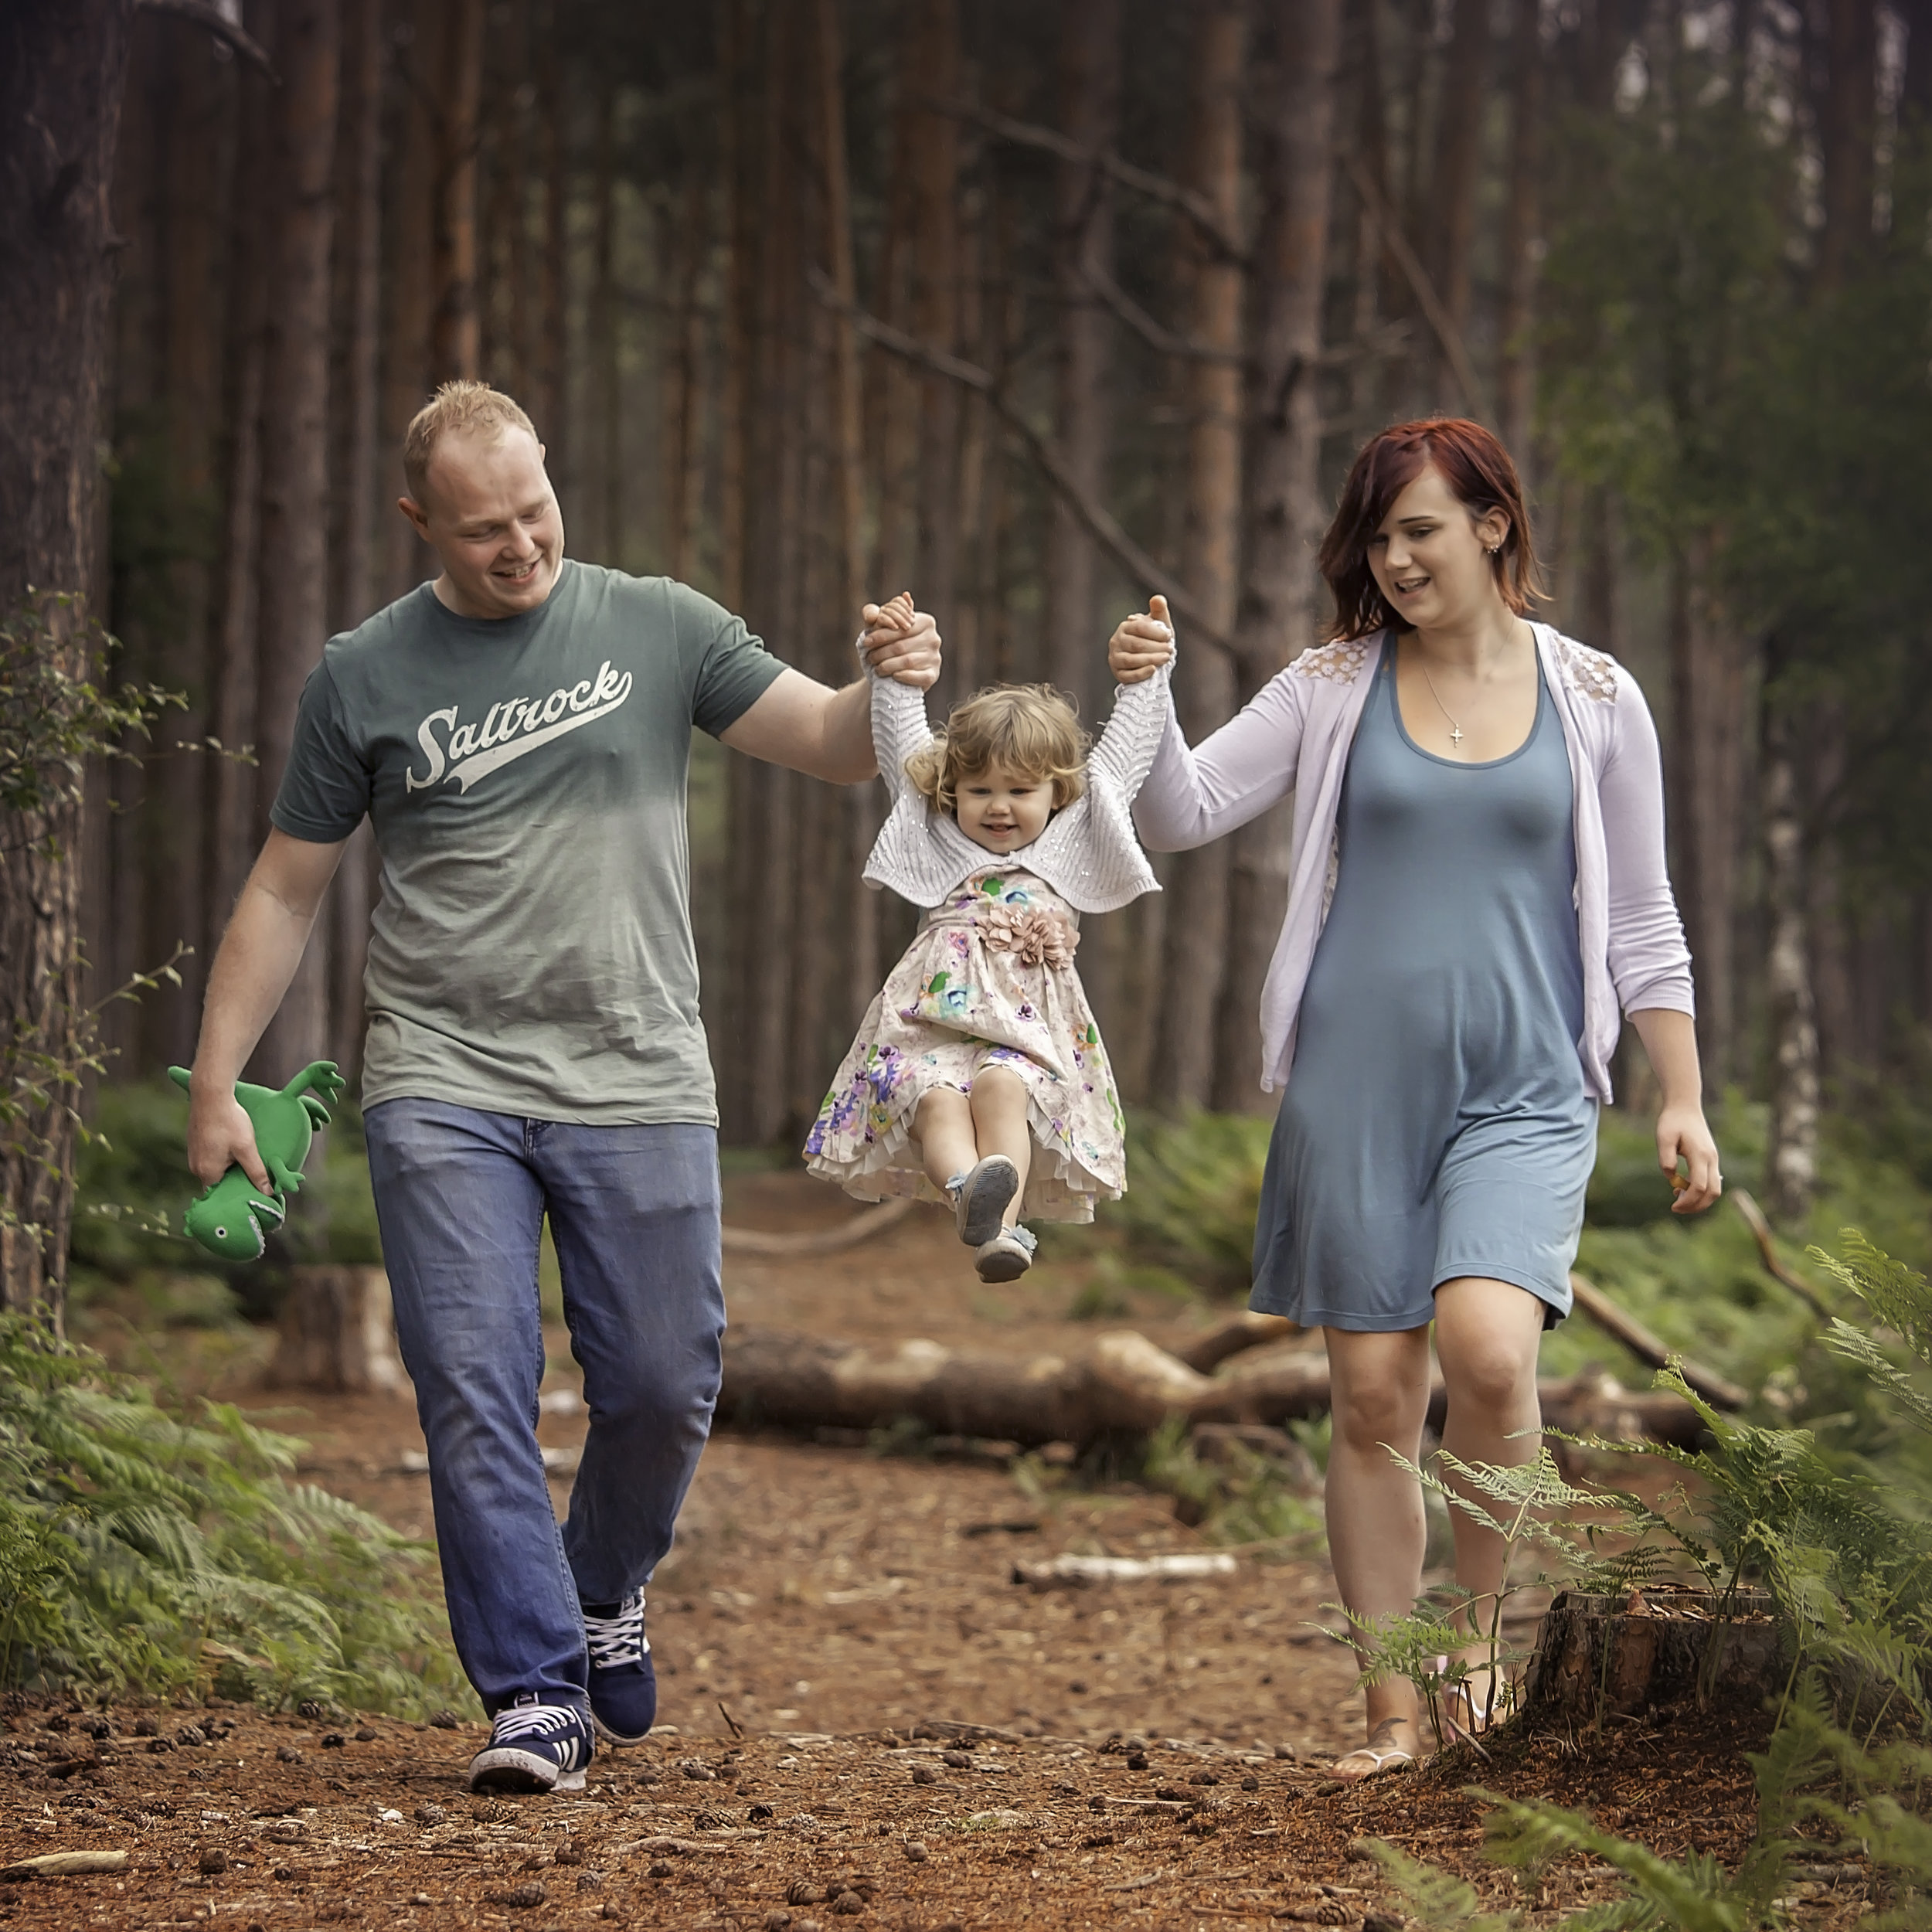 Yorkshire family photography: young family of 3 walking through the forest